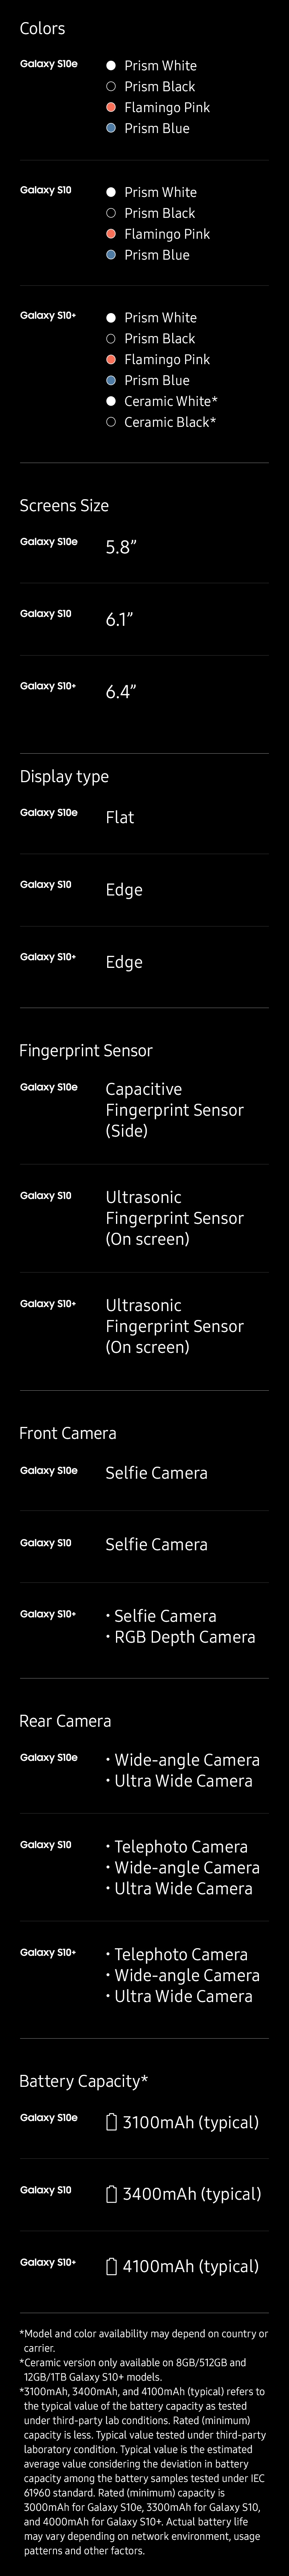 comparison mobile screen